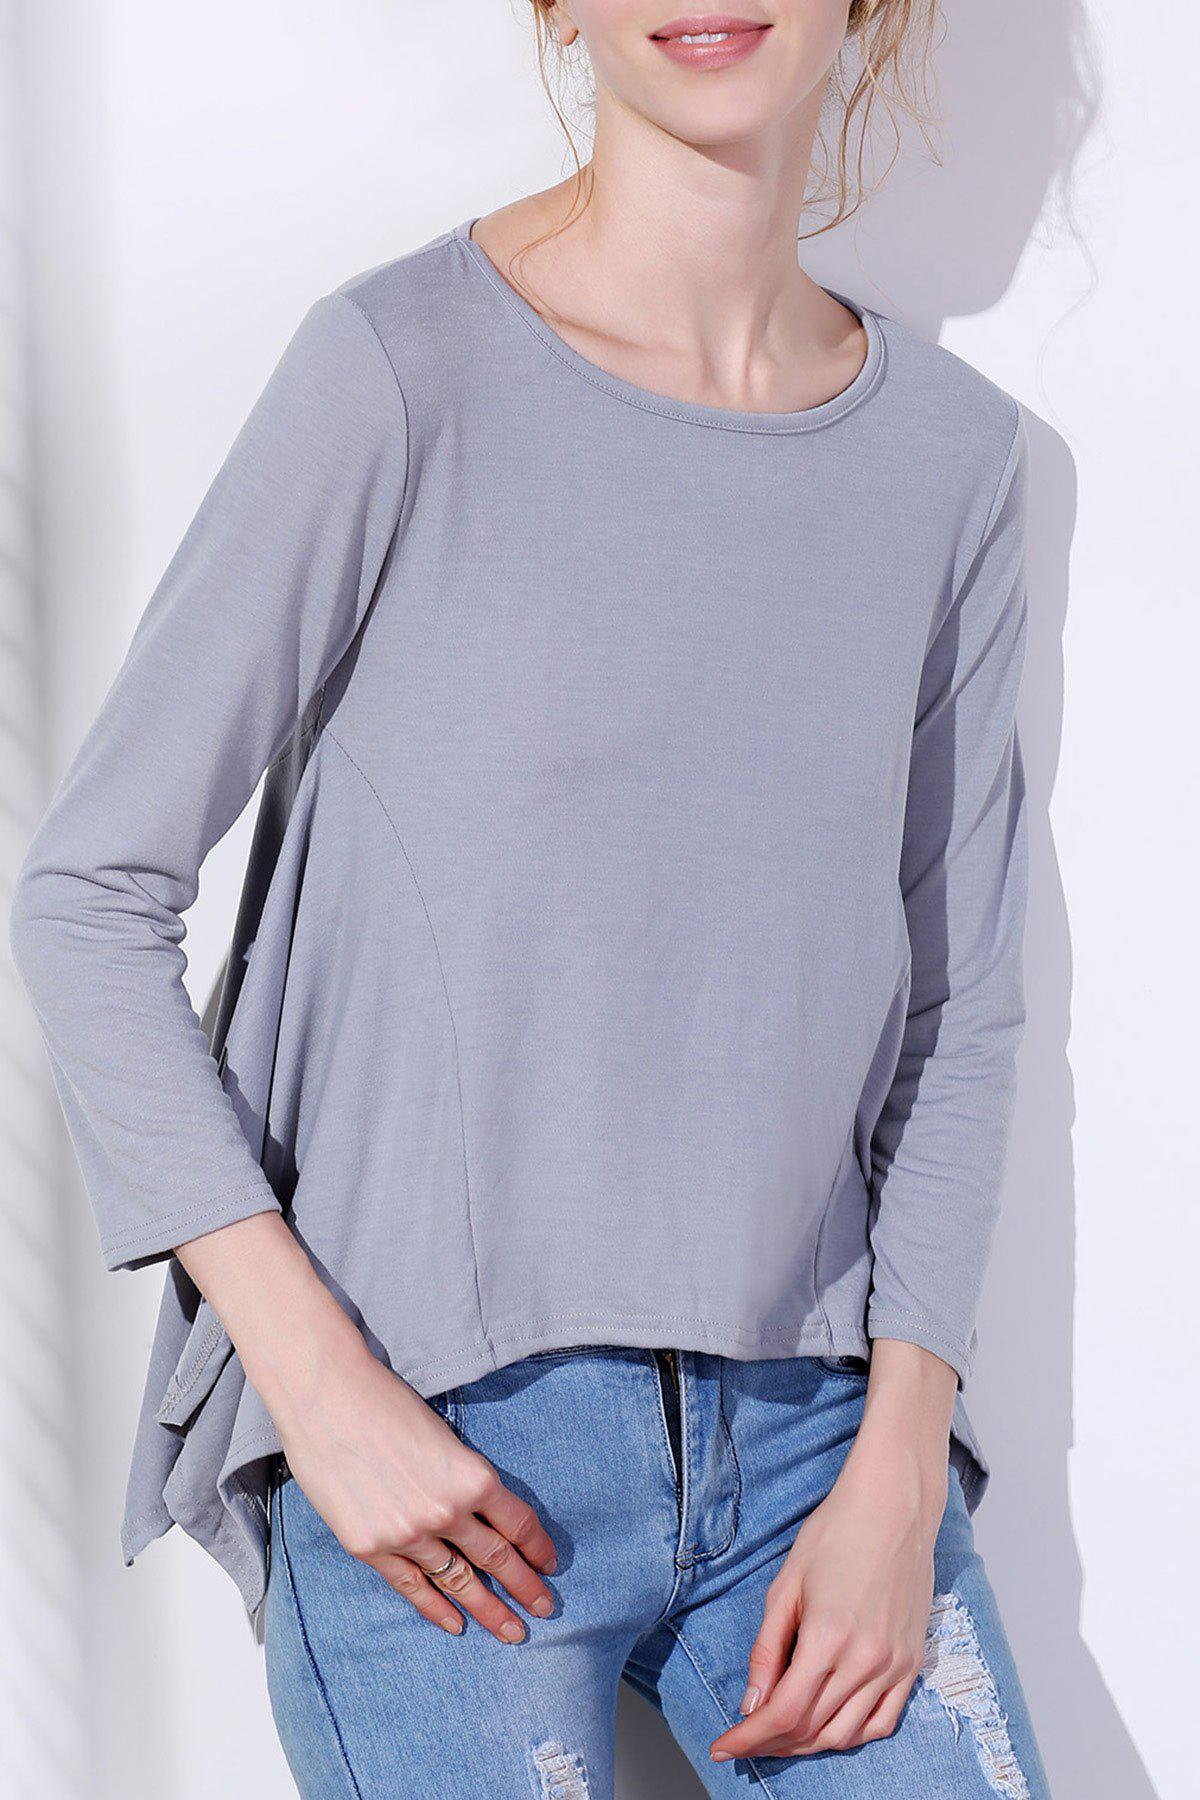 Store Fashionable Scoop Neck Solid Color Asymmetric T-Shirt For Women